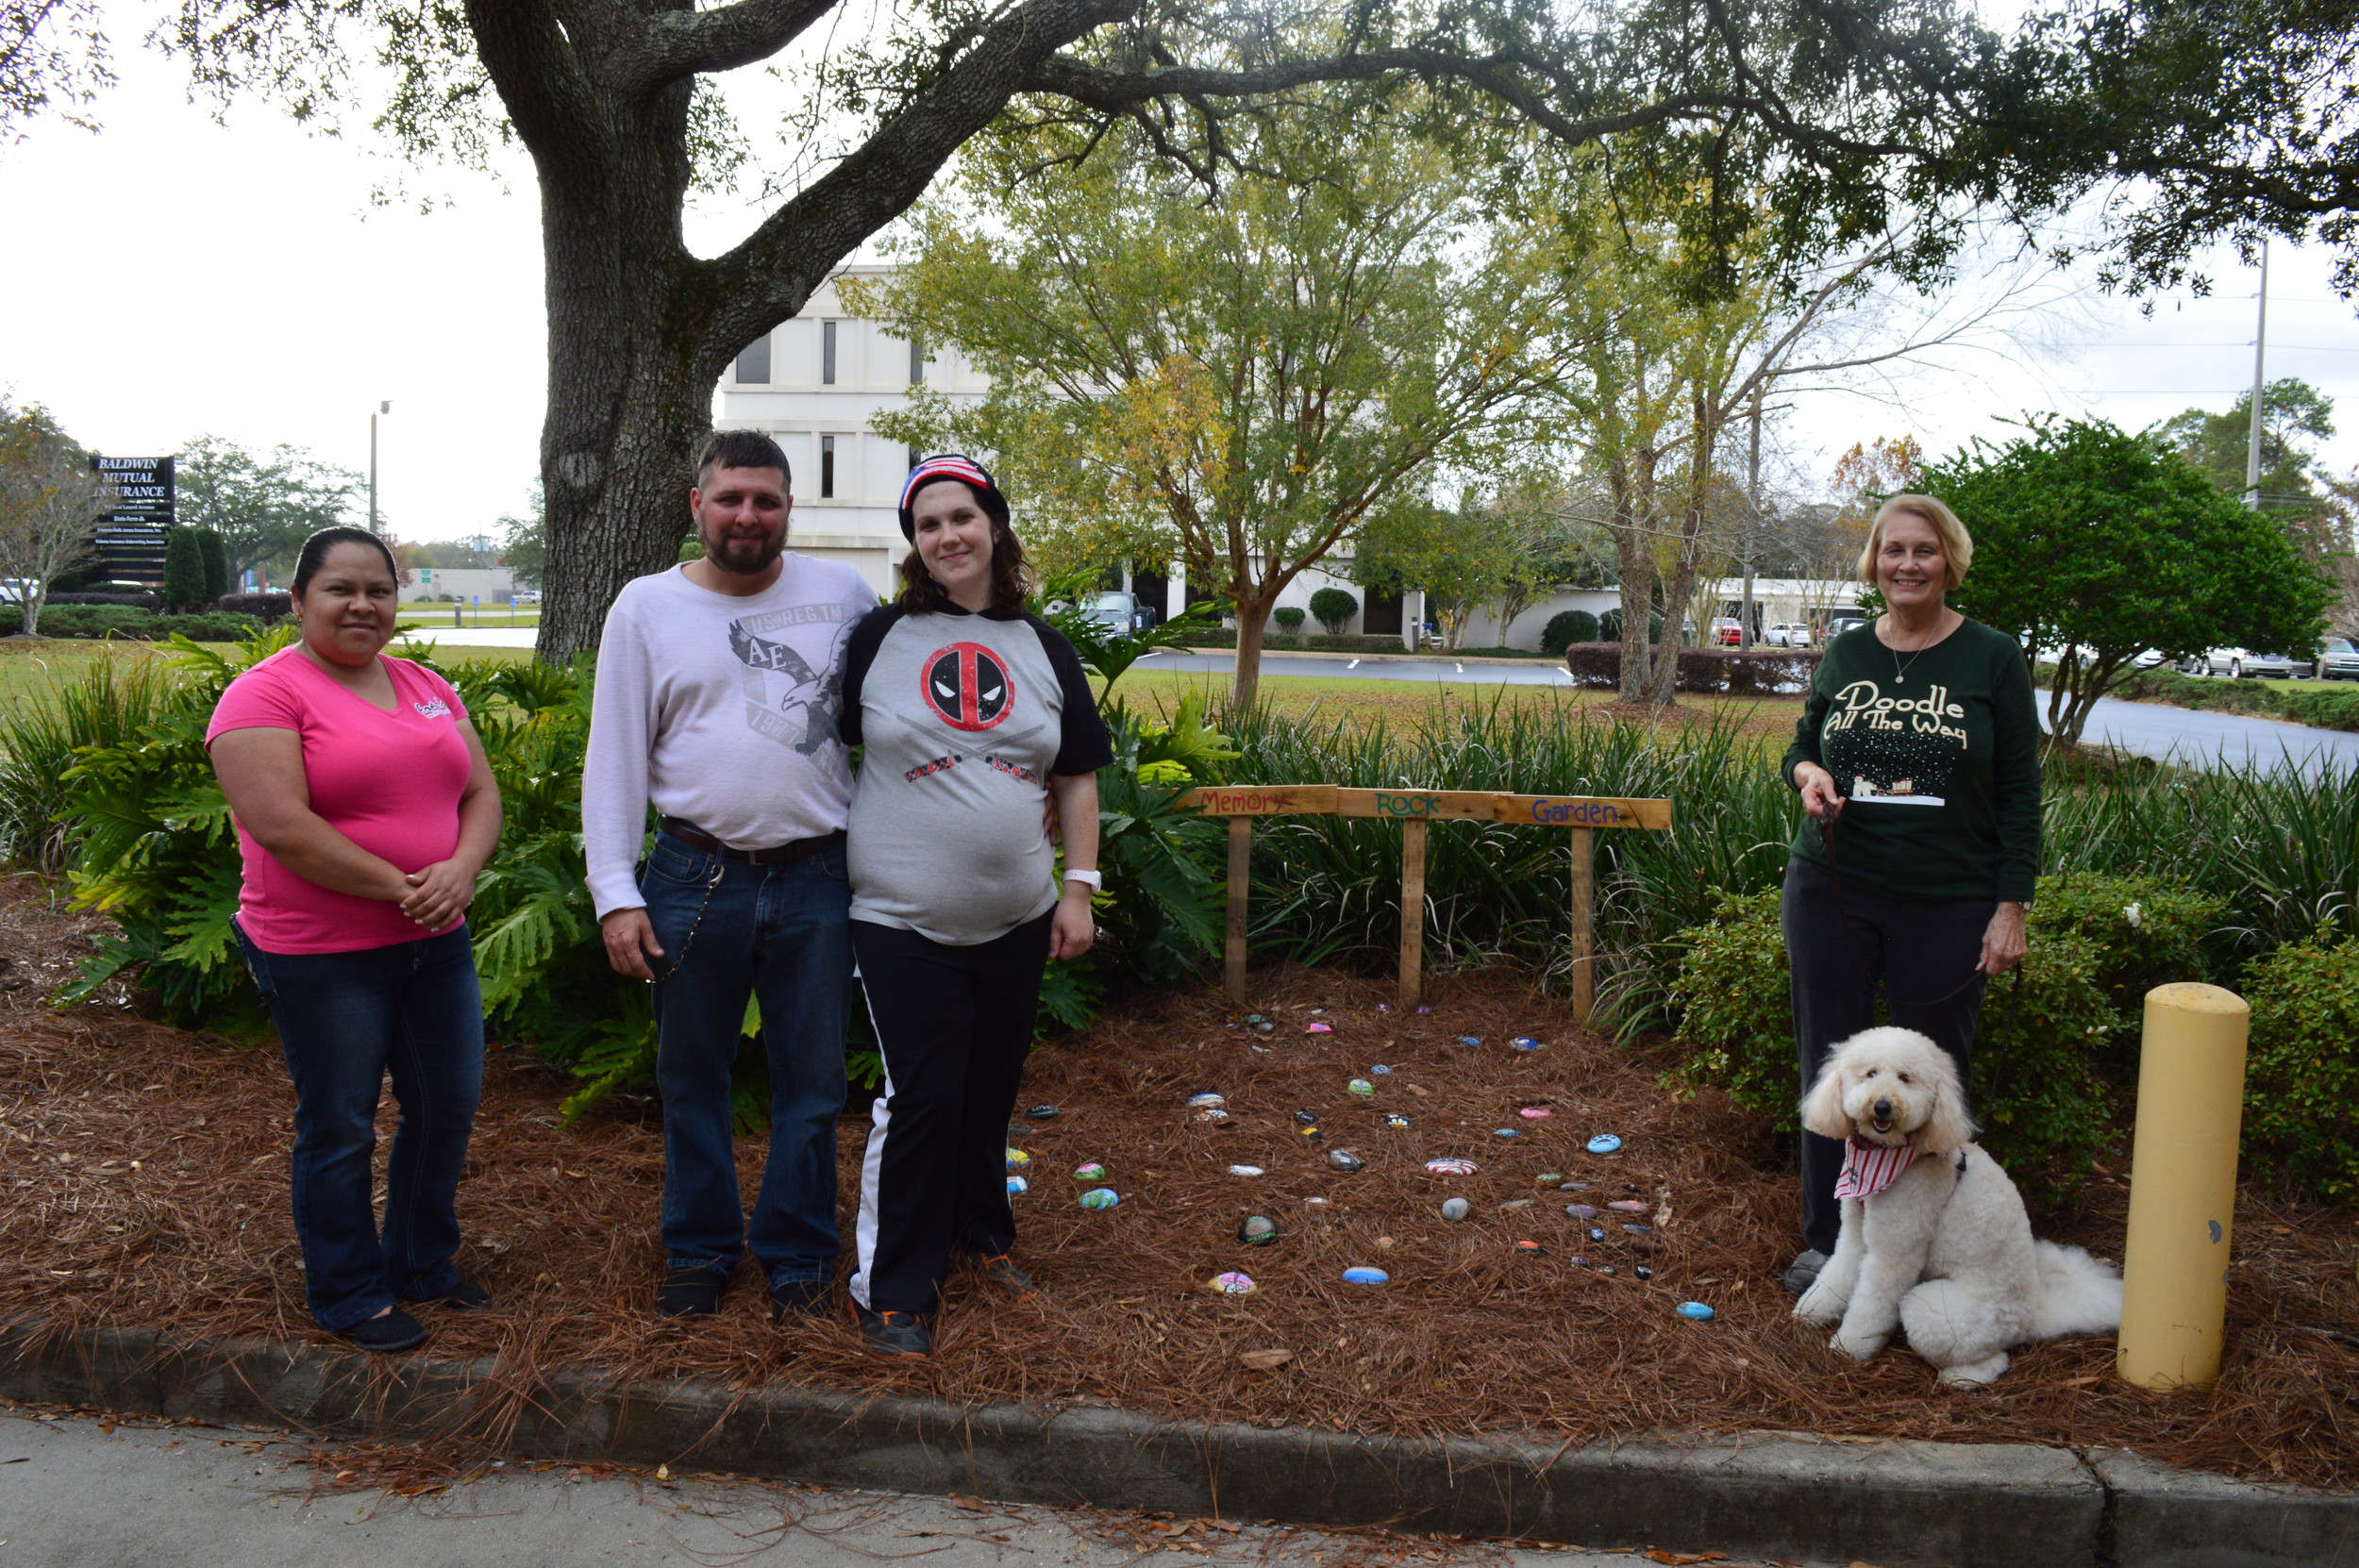 Pictured left to right: Sonia Cruz, Daniel Englert, Rachel Marotte, Lynda Folks (with her dog, Lottie May), have all contributed rocks to the Memory Rock Garden to honor special people and moments in their lives.